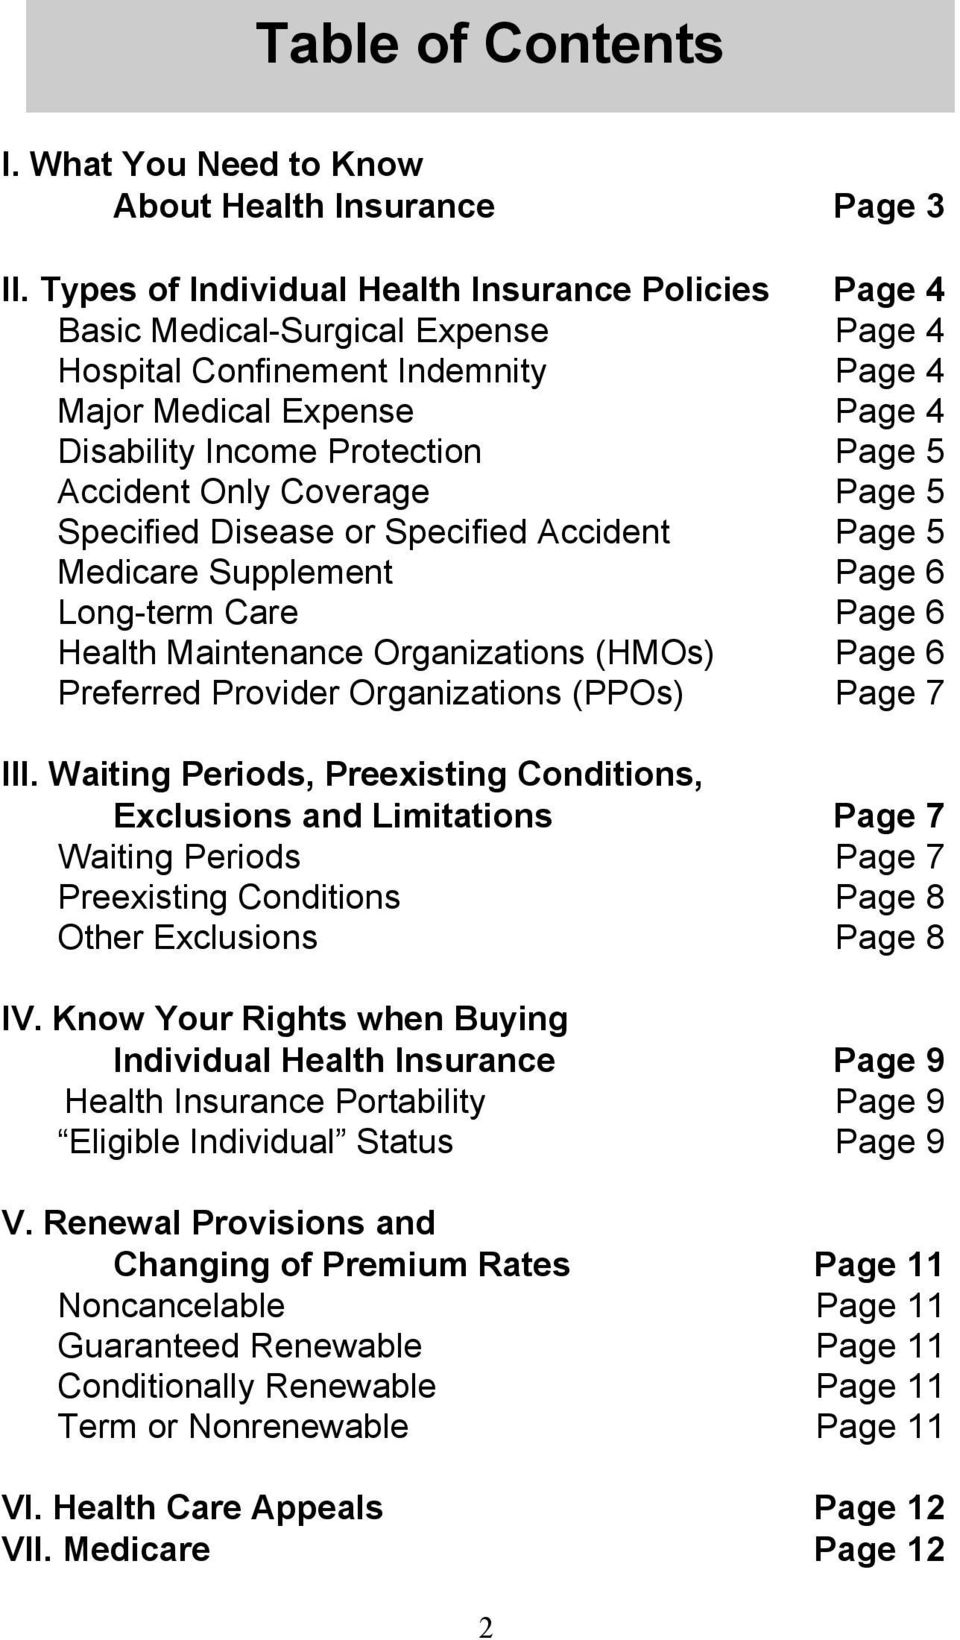 Accident Only Coverage Page 5 Specified Disease or Specified Accident Page 5 Medicare Supplement Page 6 Long-term Care Page 6 Health Maintenance Organizations (HMOs) Page 6 Preferred Provider